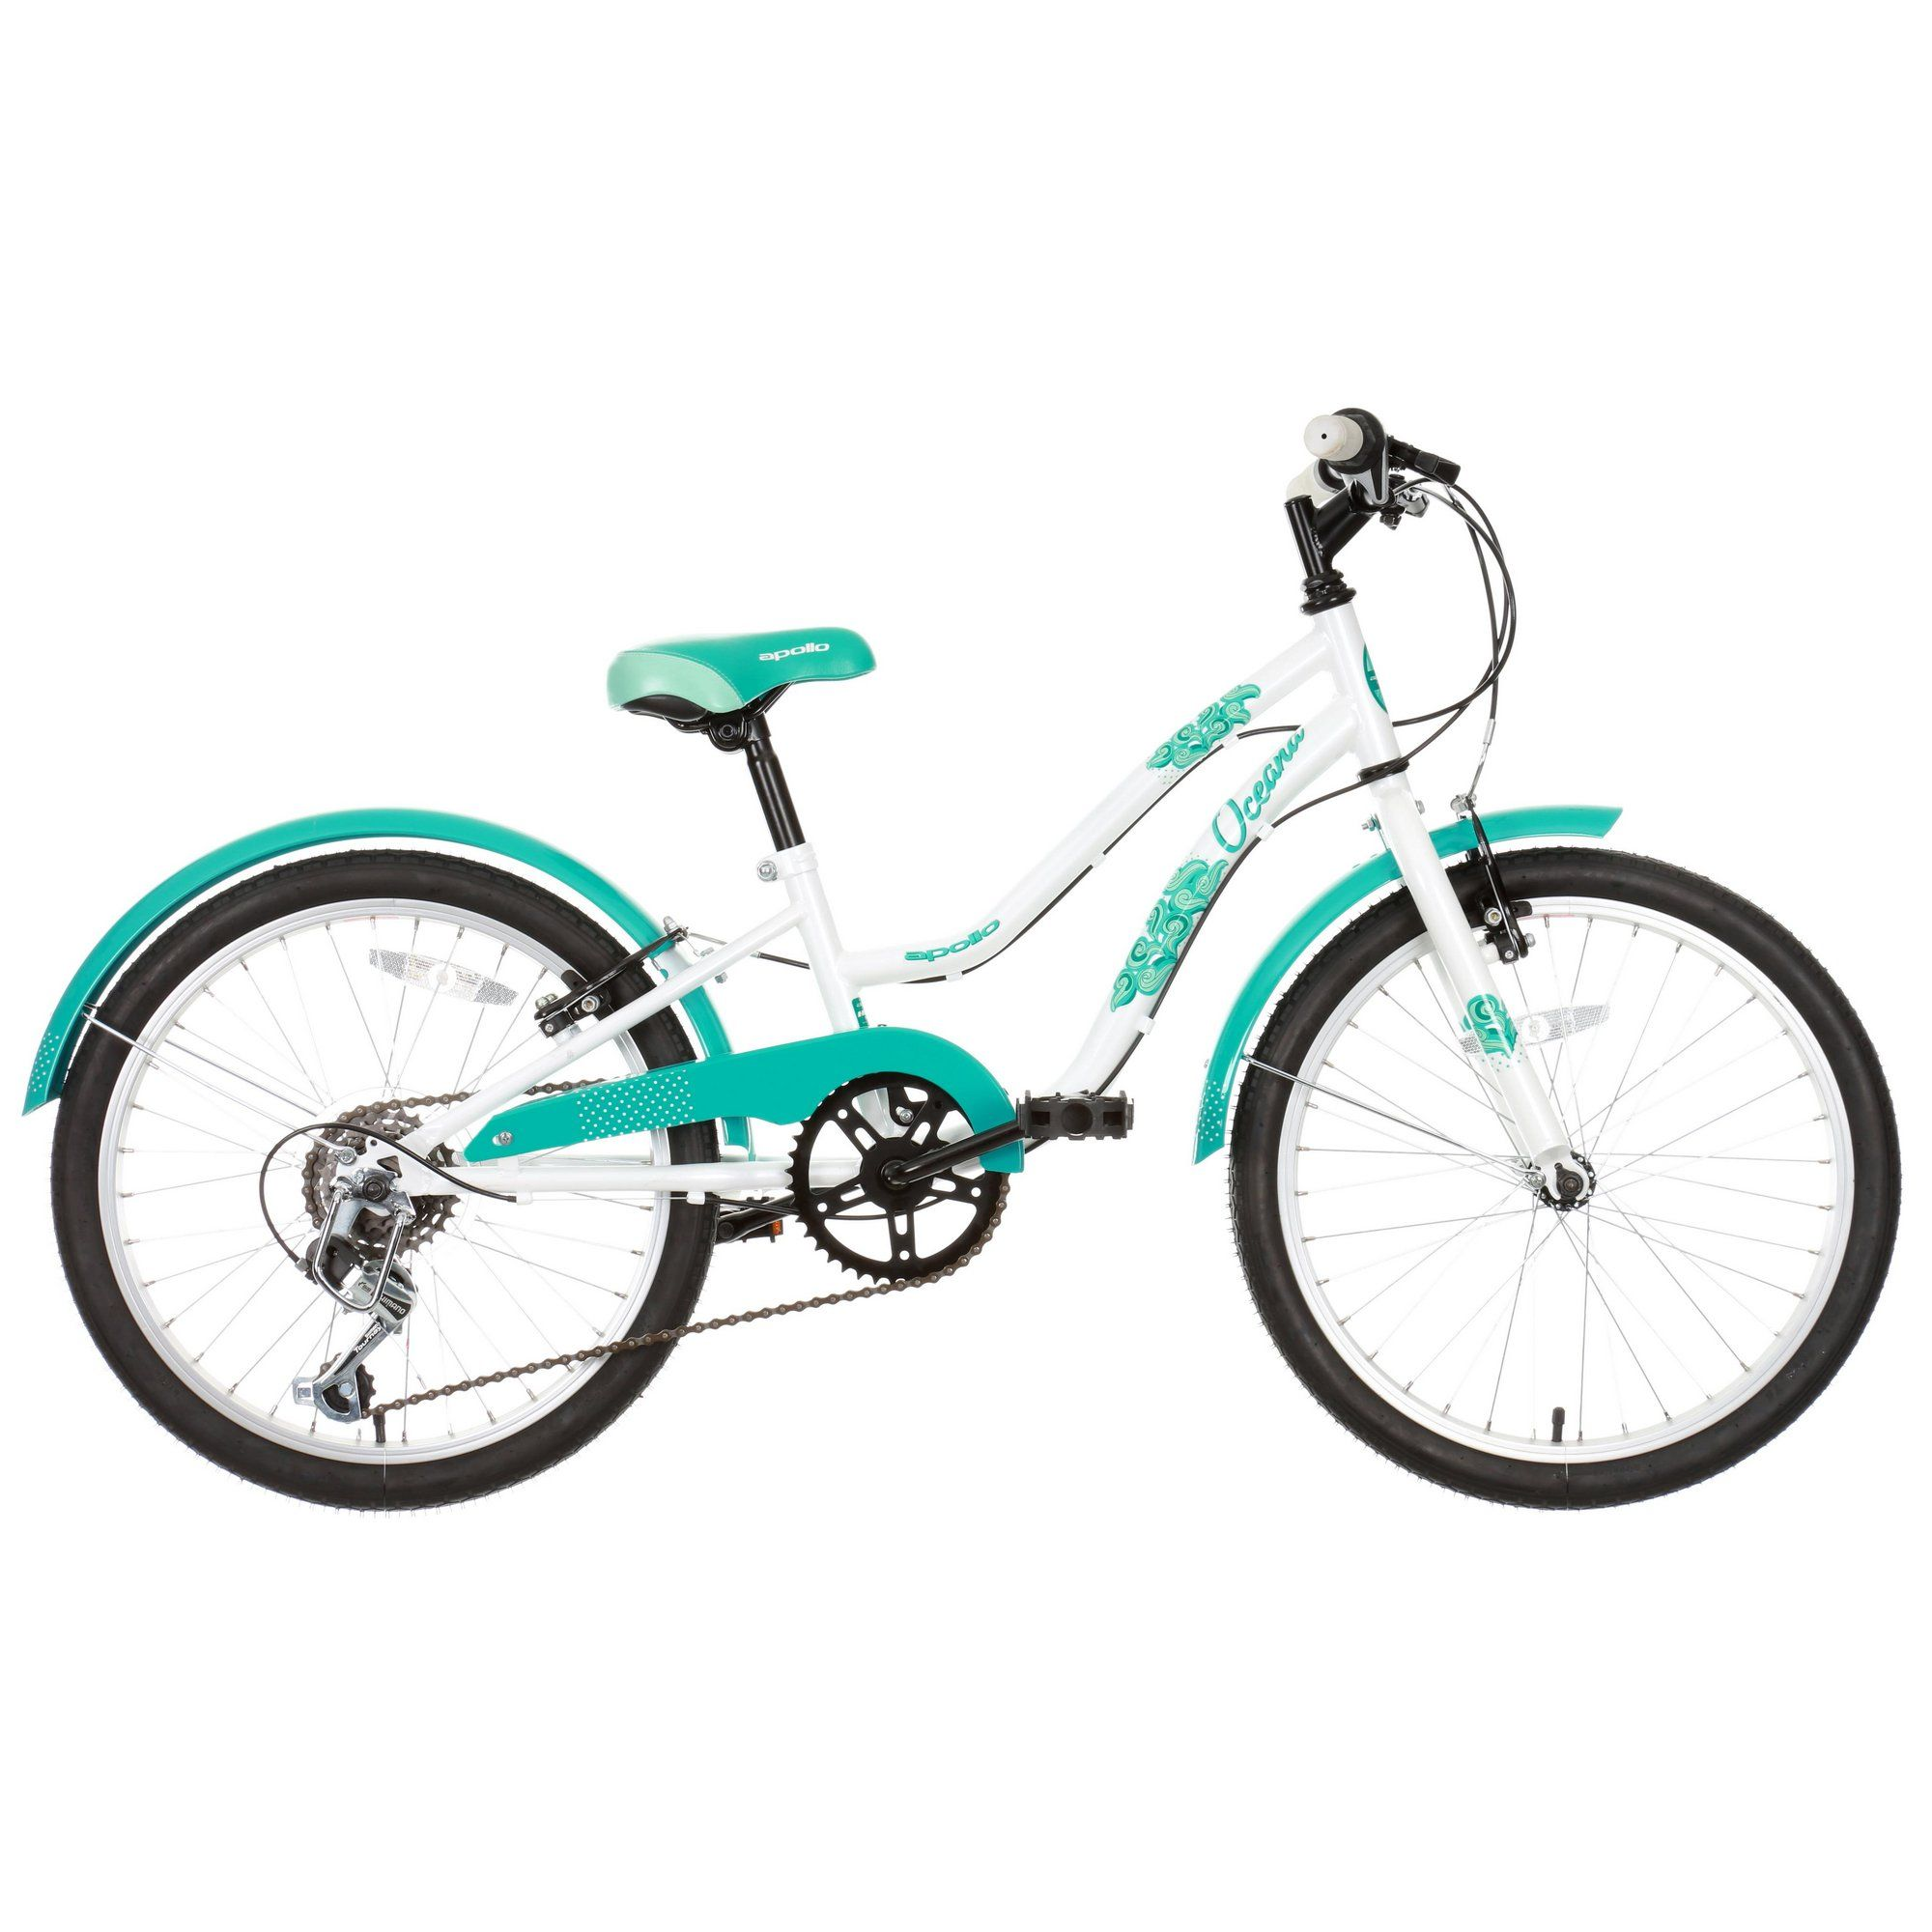 64c31f5f864 Find the best selection of kids bikes for sale, with 12 months interest  free credit available. We will even build your boys or girls bike for free!